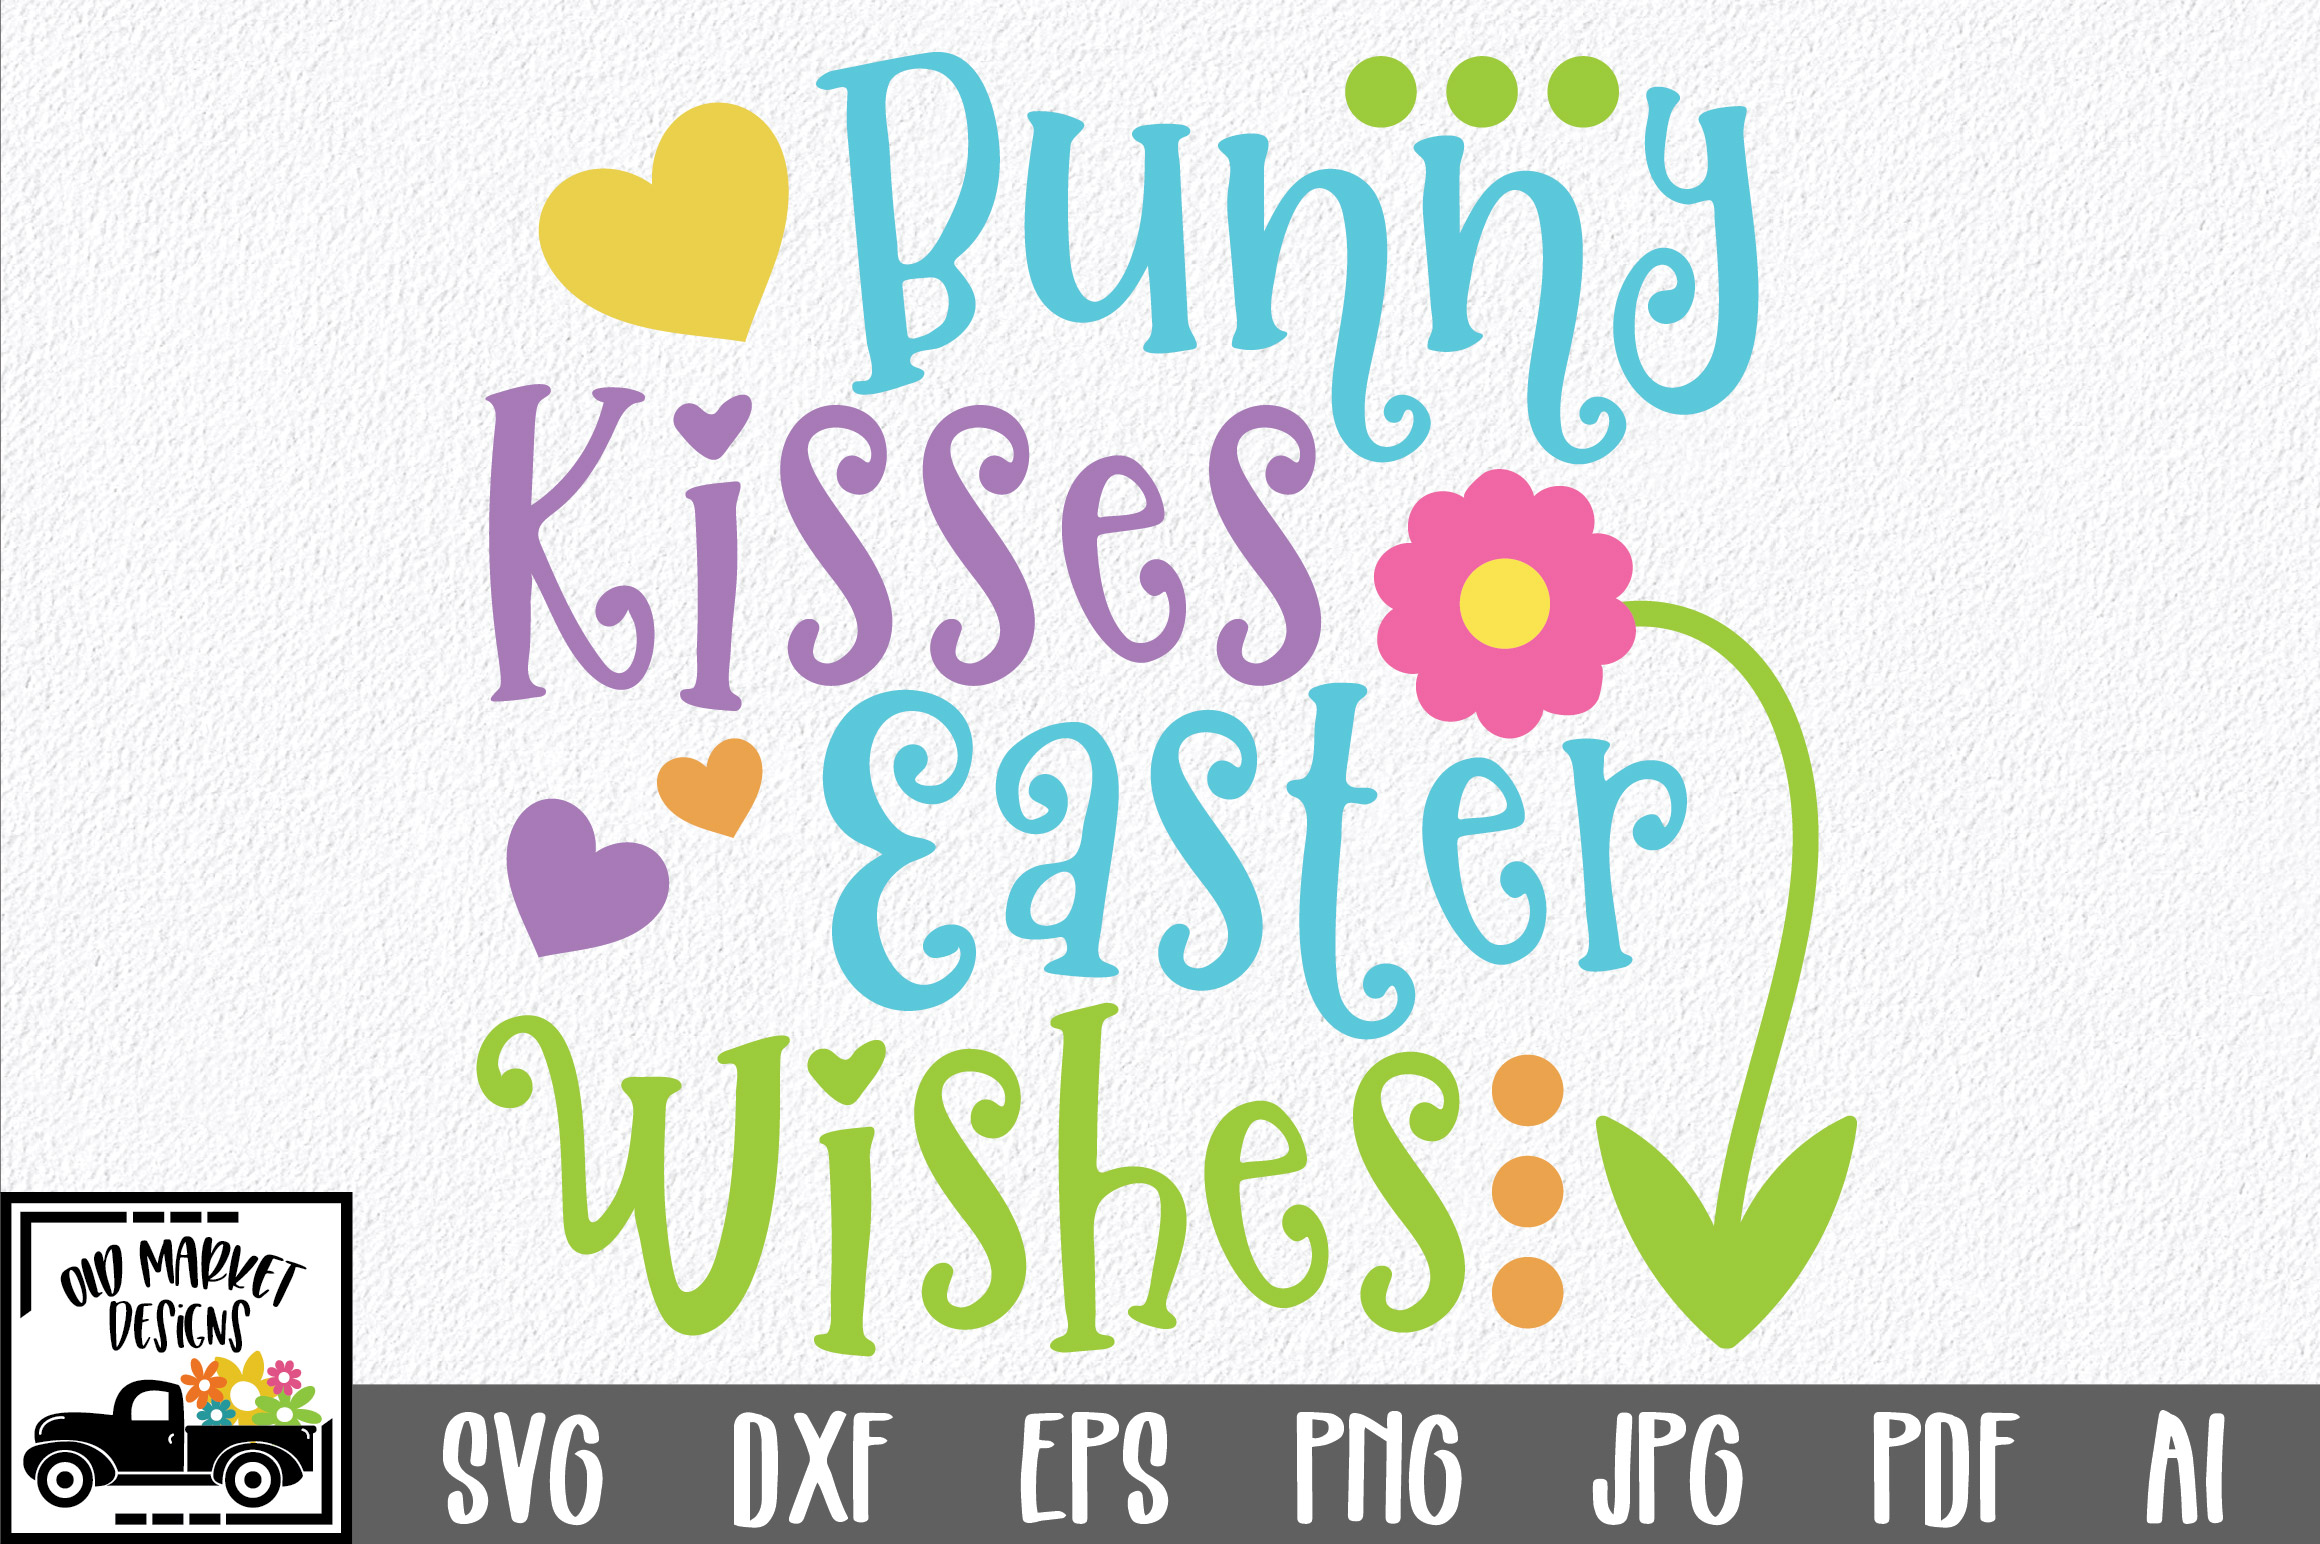 Download Free Bunny Kisses Easter Wishes Svg Graphic By Oldmarketdesigns for Cricut Explore, Silhouette and other cutting machines.